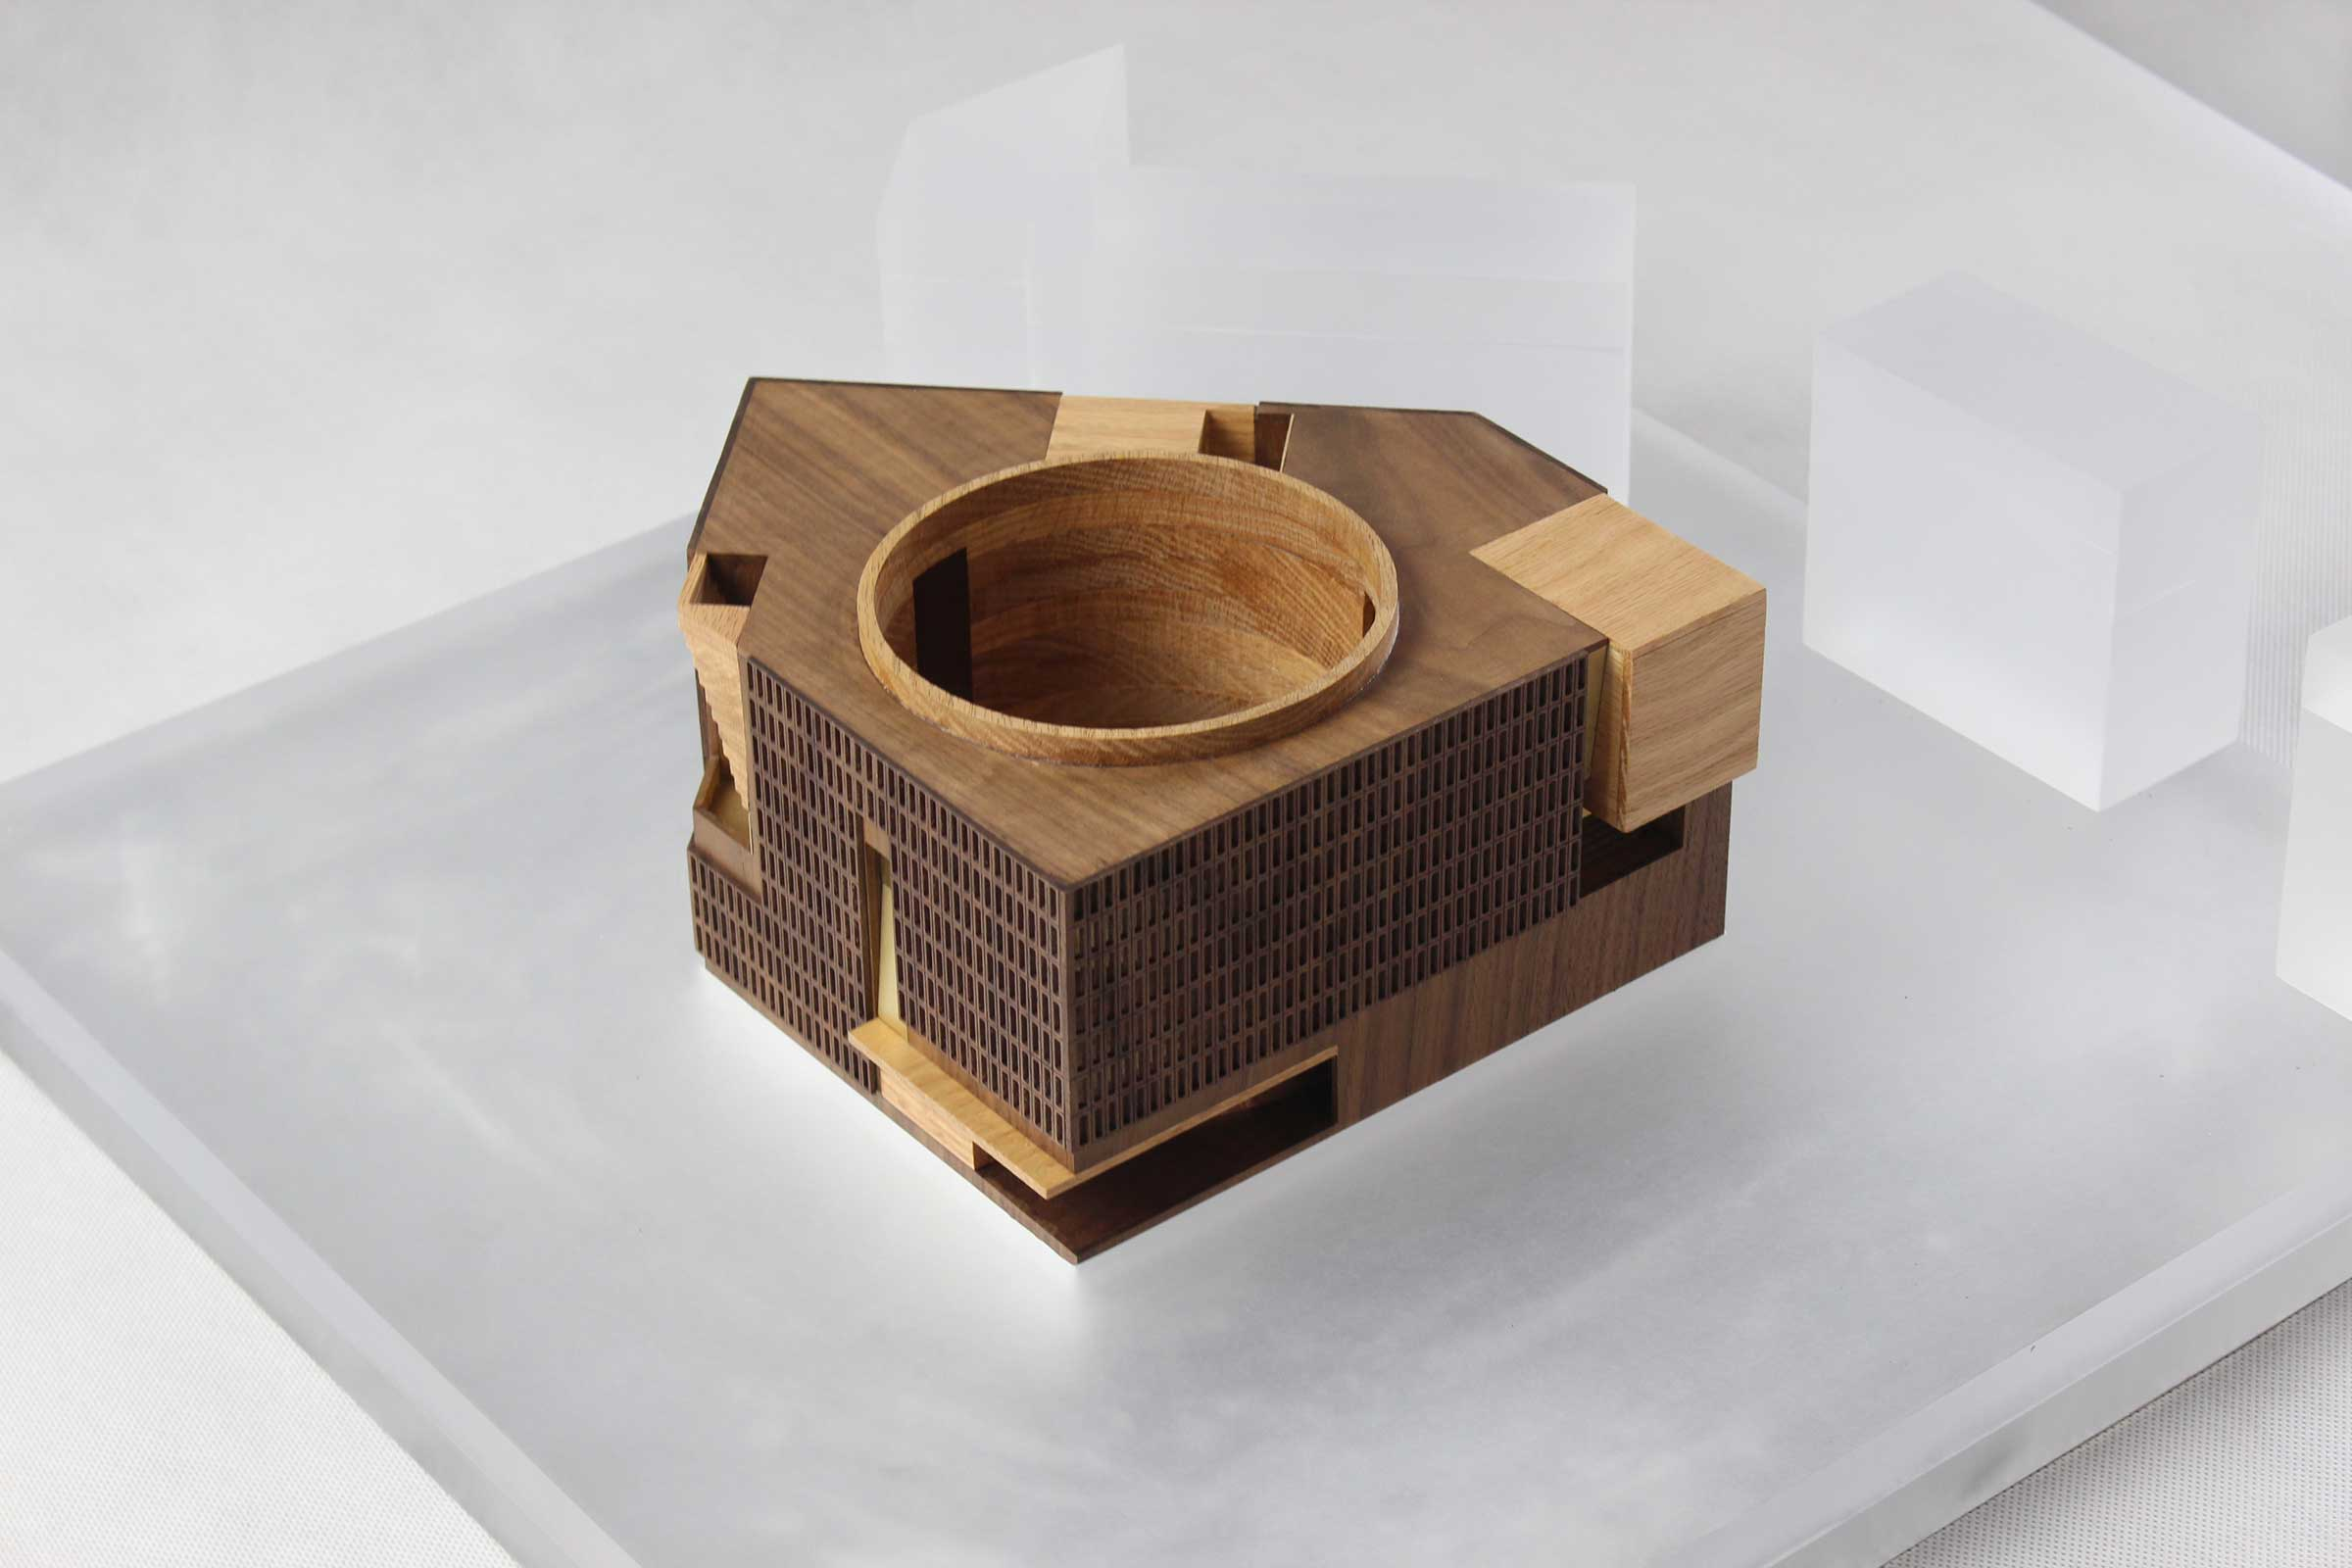 A model of the centre, from Neri&Hu Design and Research Office